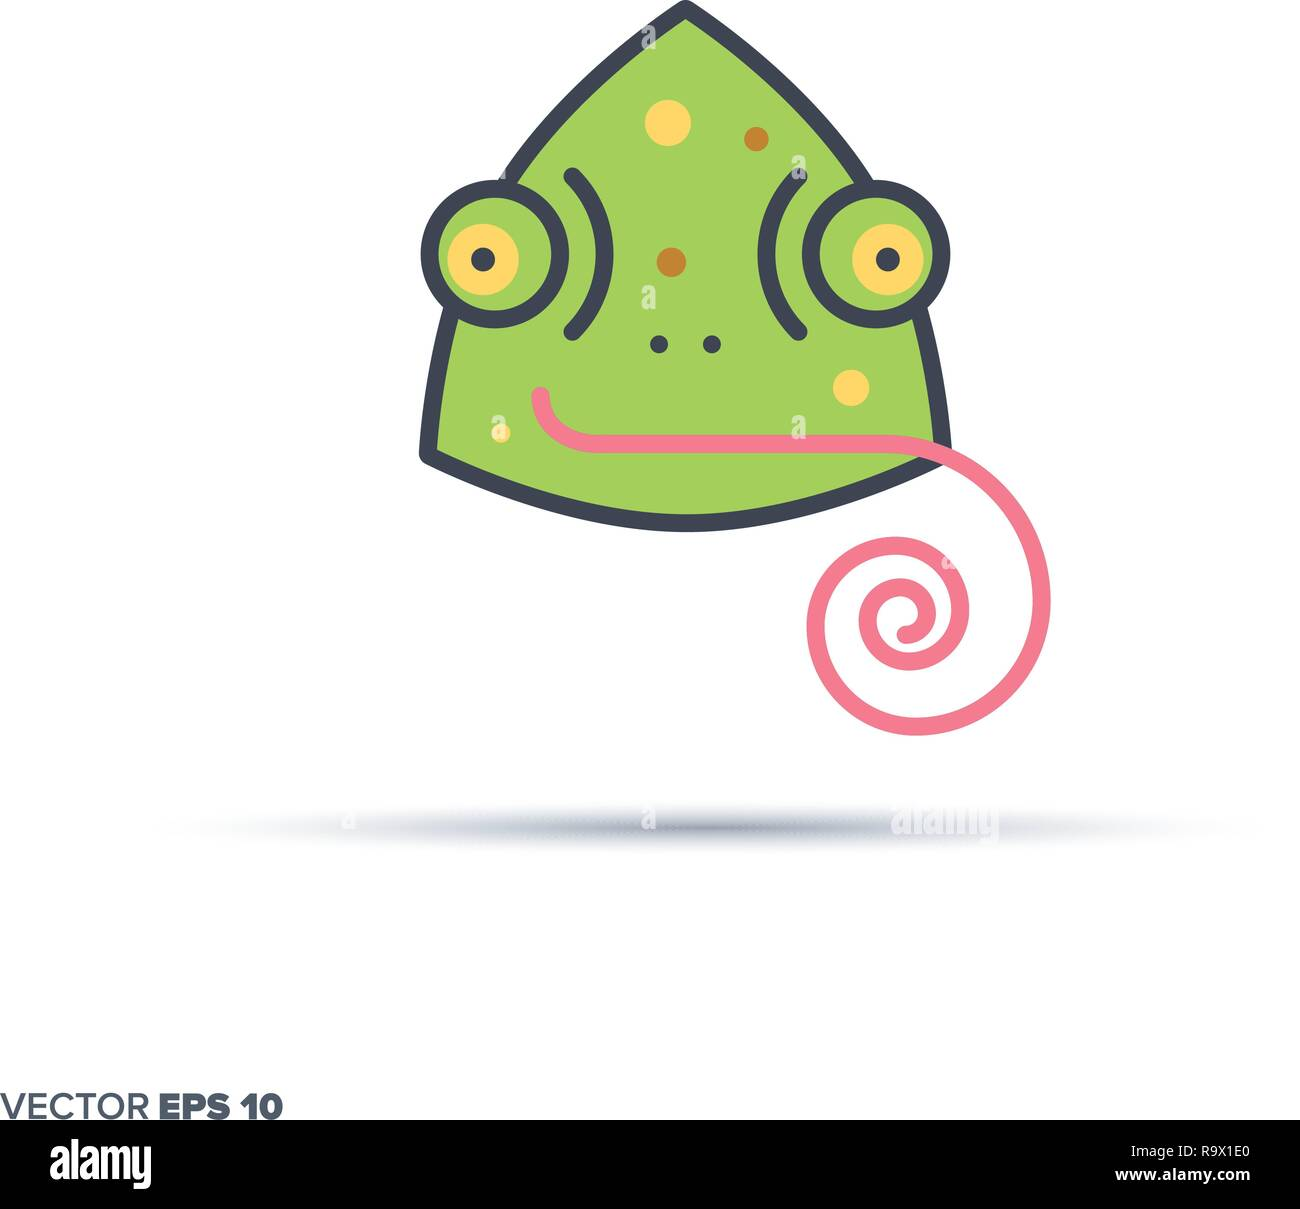 Cute chameleon face outline vector icon with color fill. Funny animal illustration. - Stock Vector